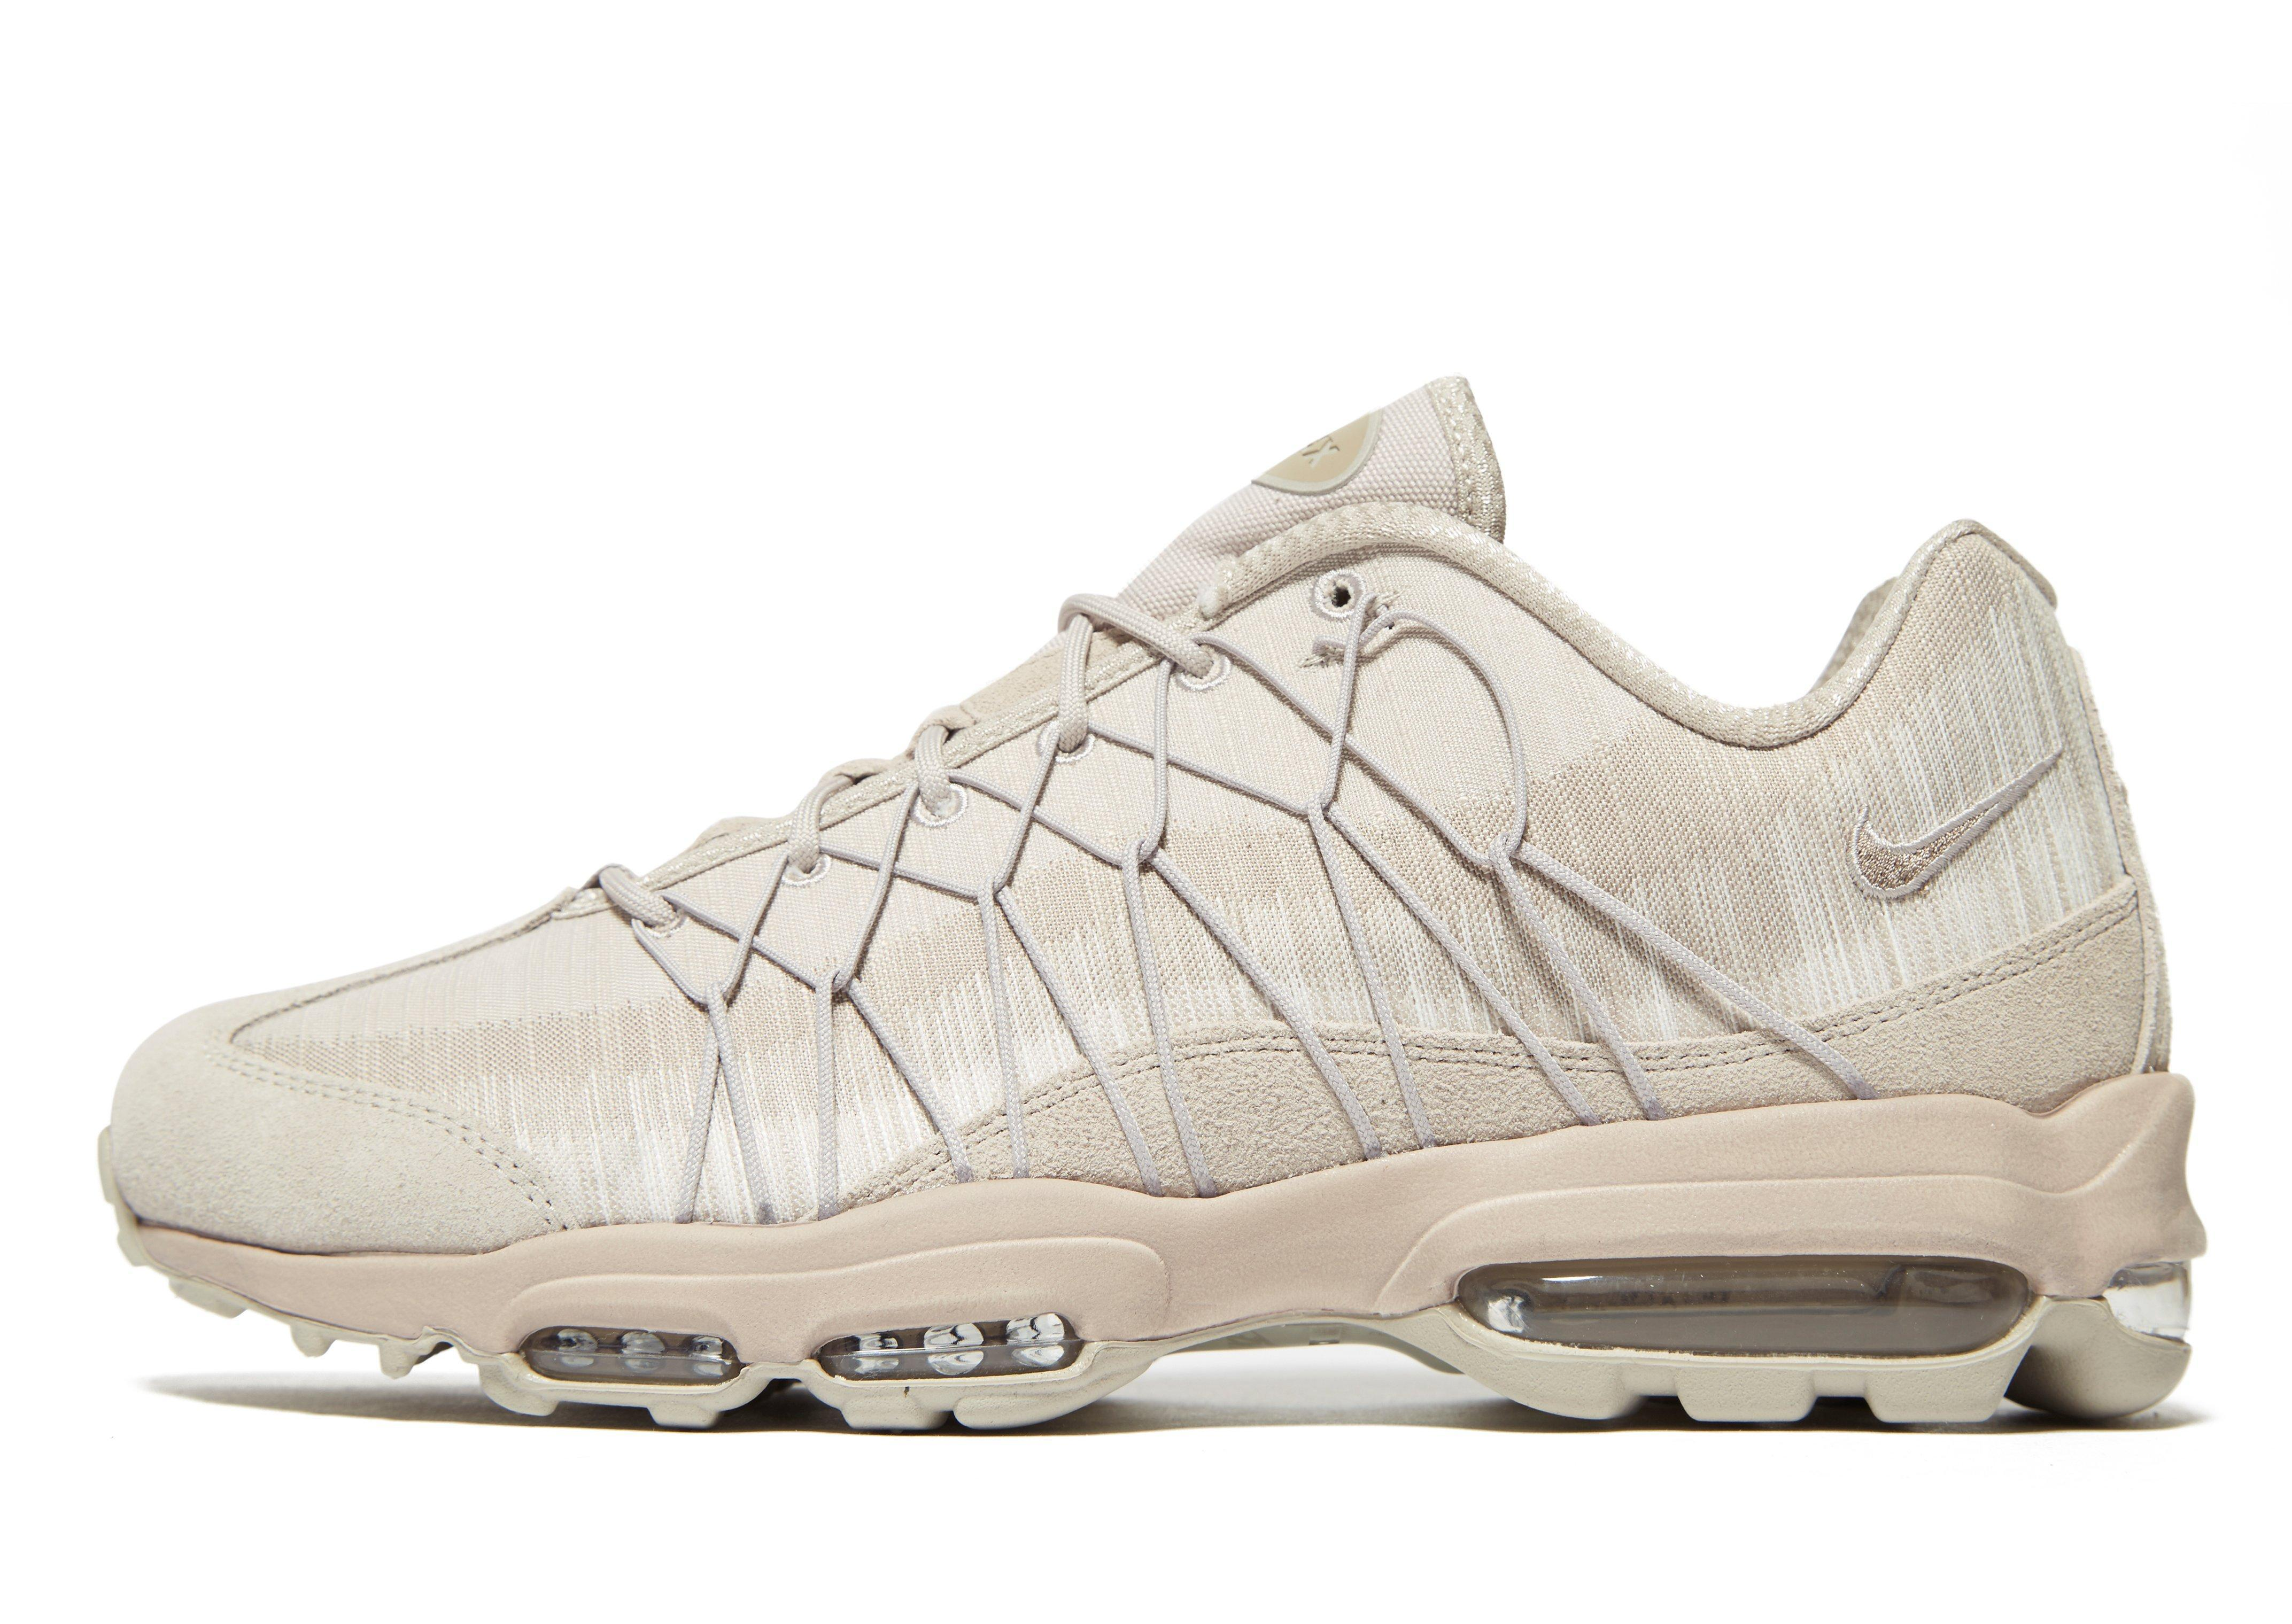 563caa423b8bc Gallery. Previously sold at: JD Sports · Men's Nike Air Max Trainers